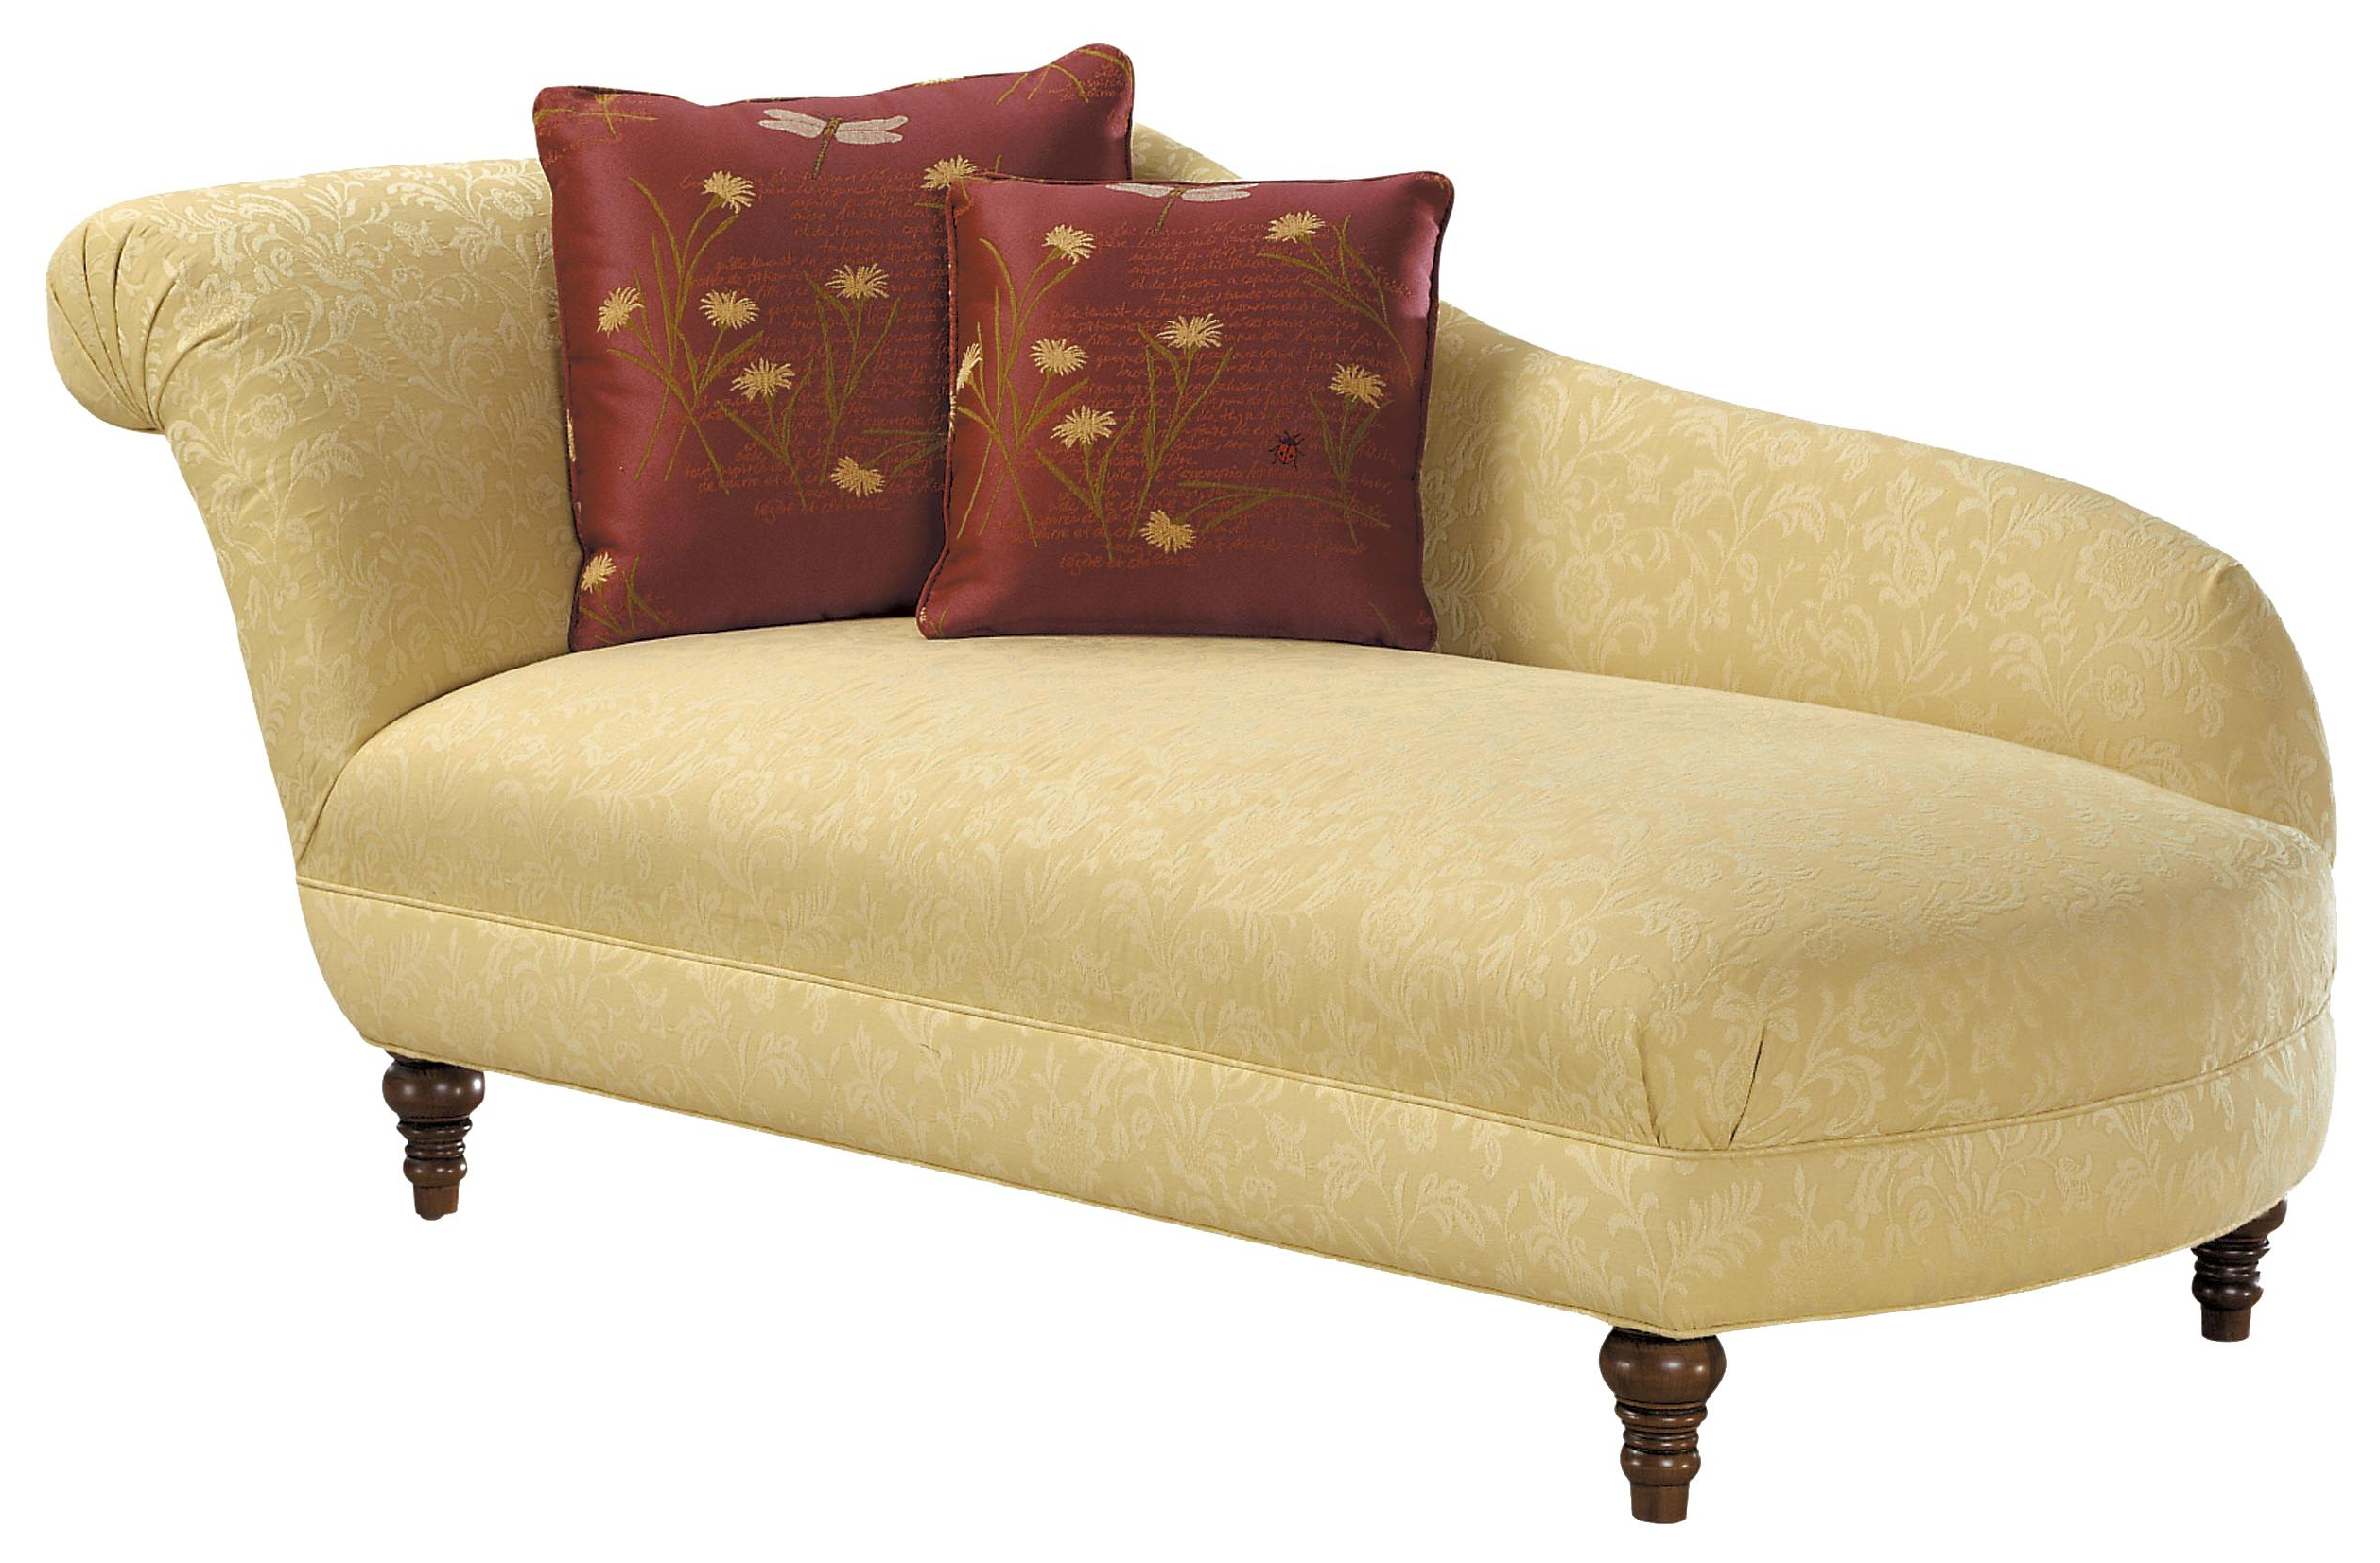 Chaise Sofa Chairs Intended For Most Current Fairfield Sofa Accents Traditional Styled Lounge Chaise (Gallery 4 of 20)